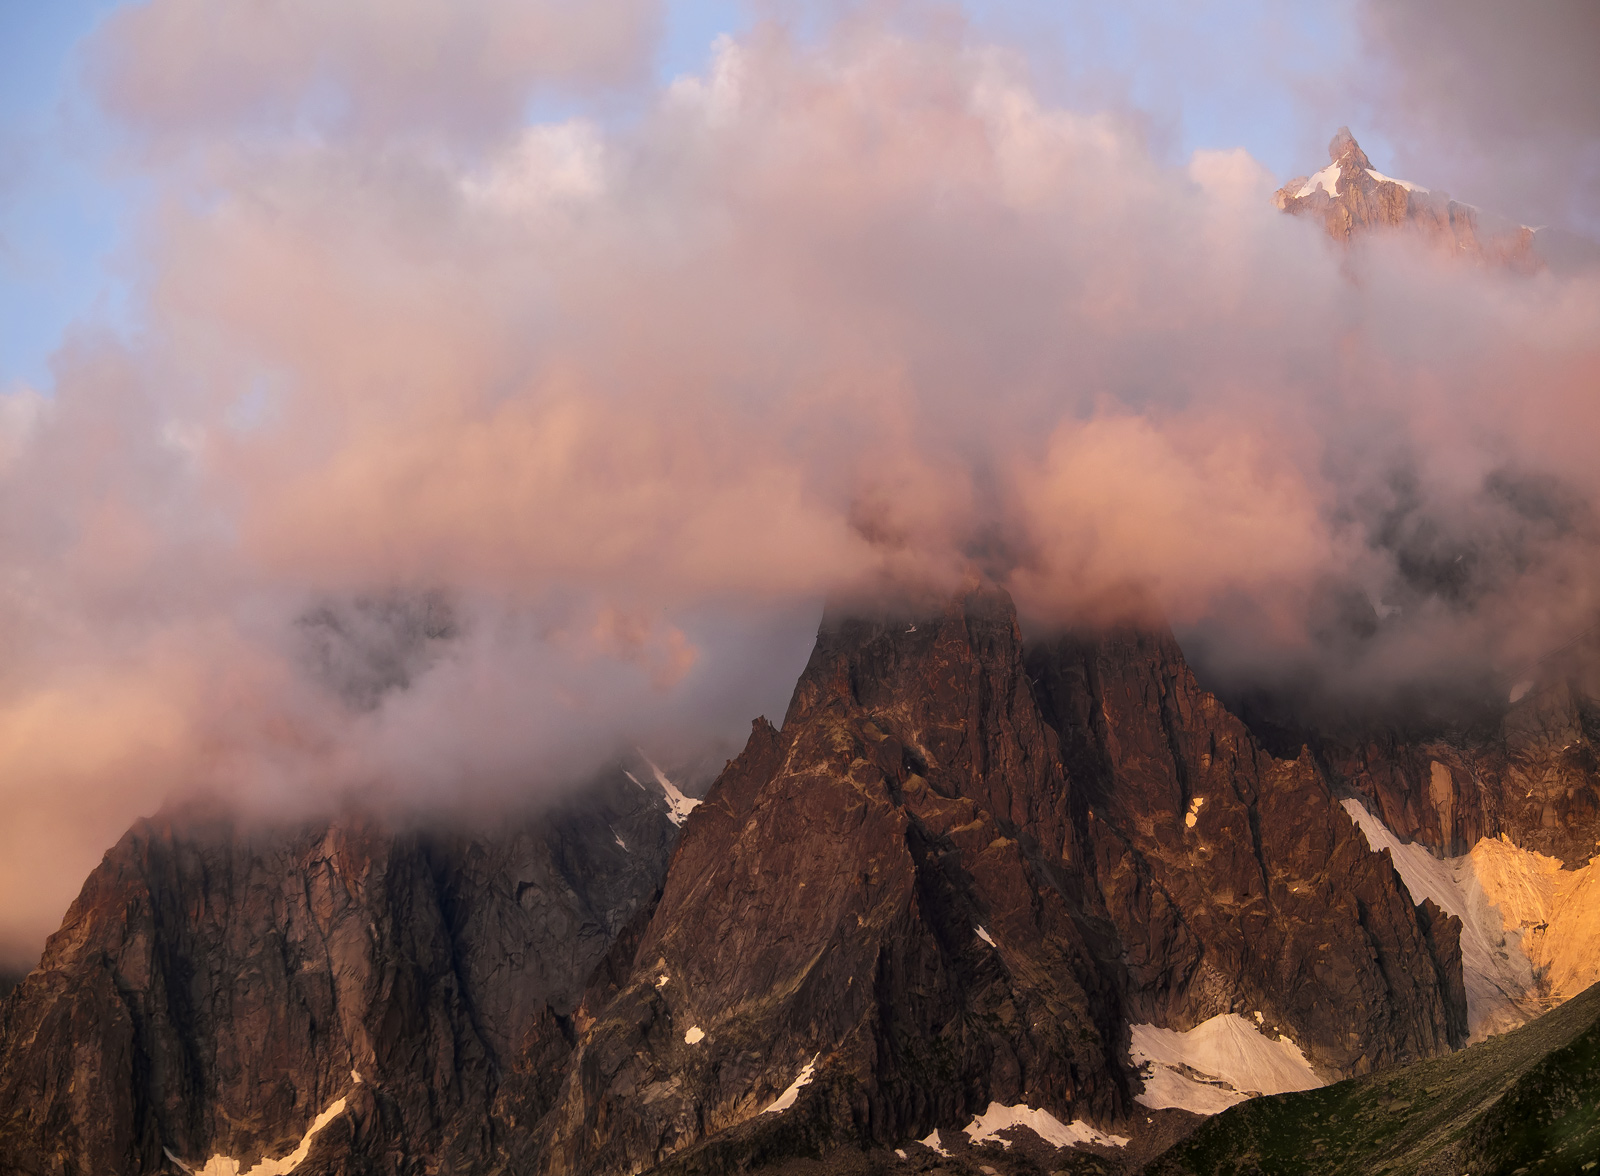 This was quite literally the last light after a passing summer storm closed in and smothered the Aiguille Du Midi in the Mont...